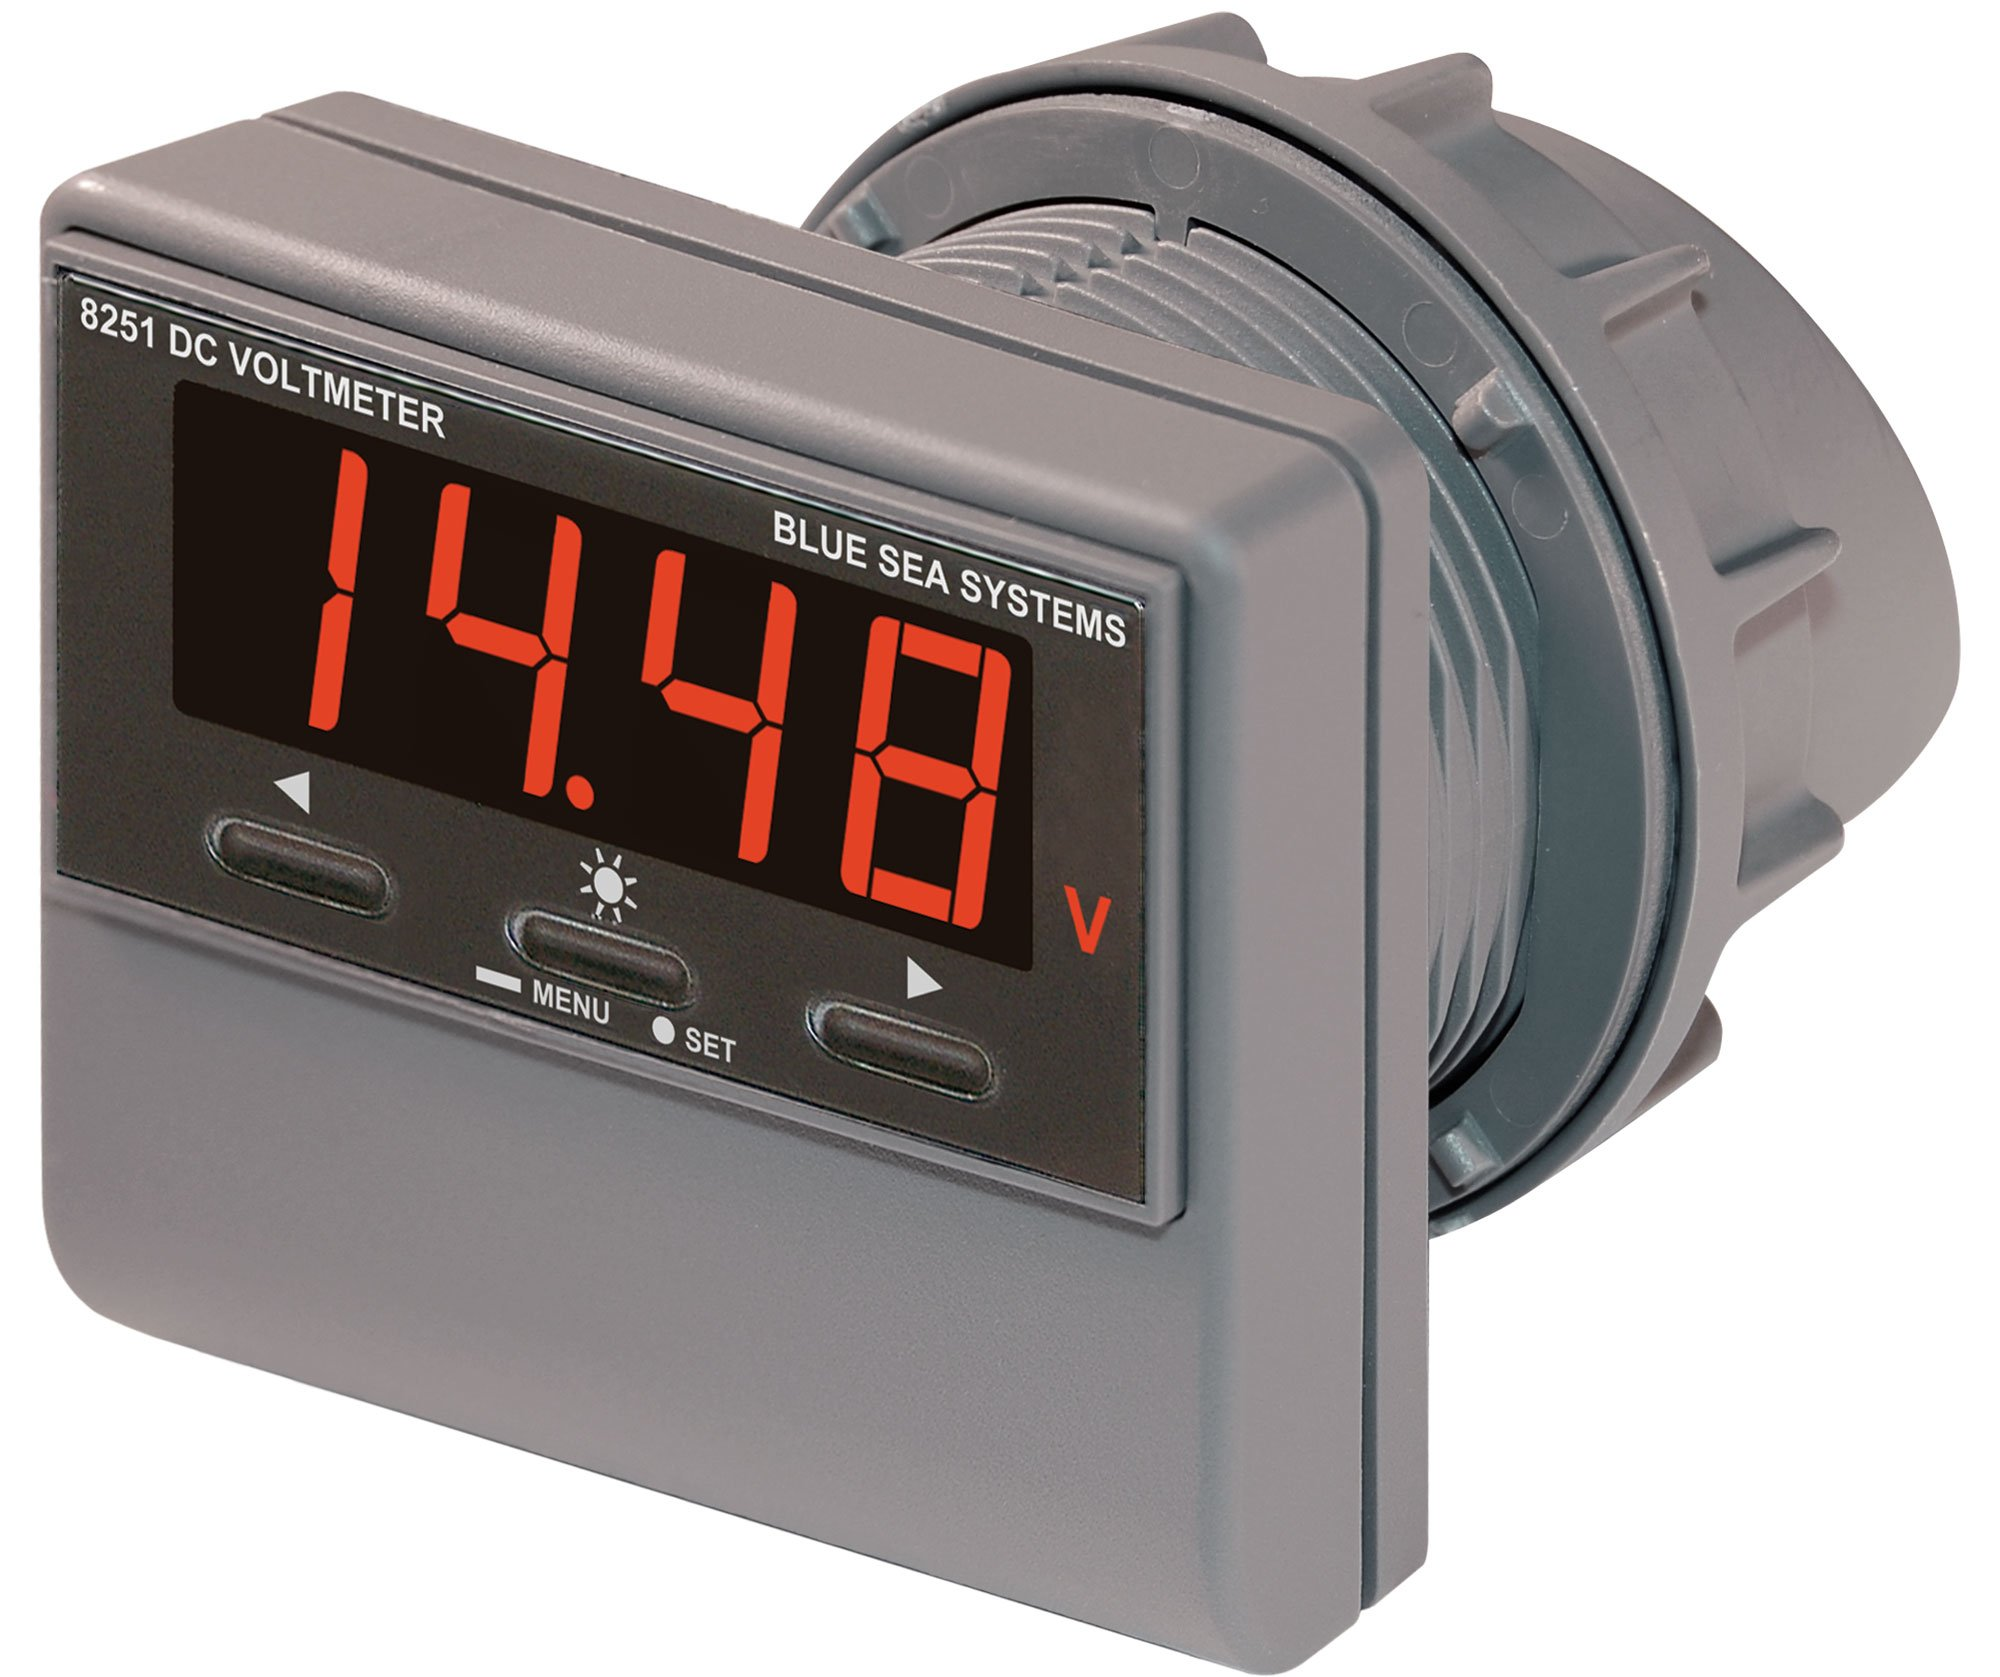 Blue Sea Systems 8251 DC Digital Voltmeter with Alarm